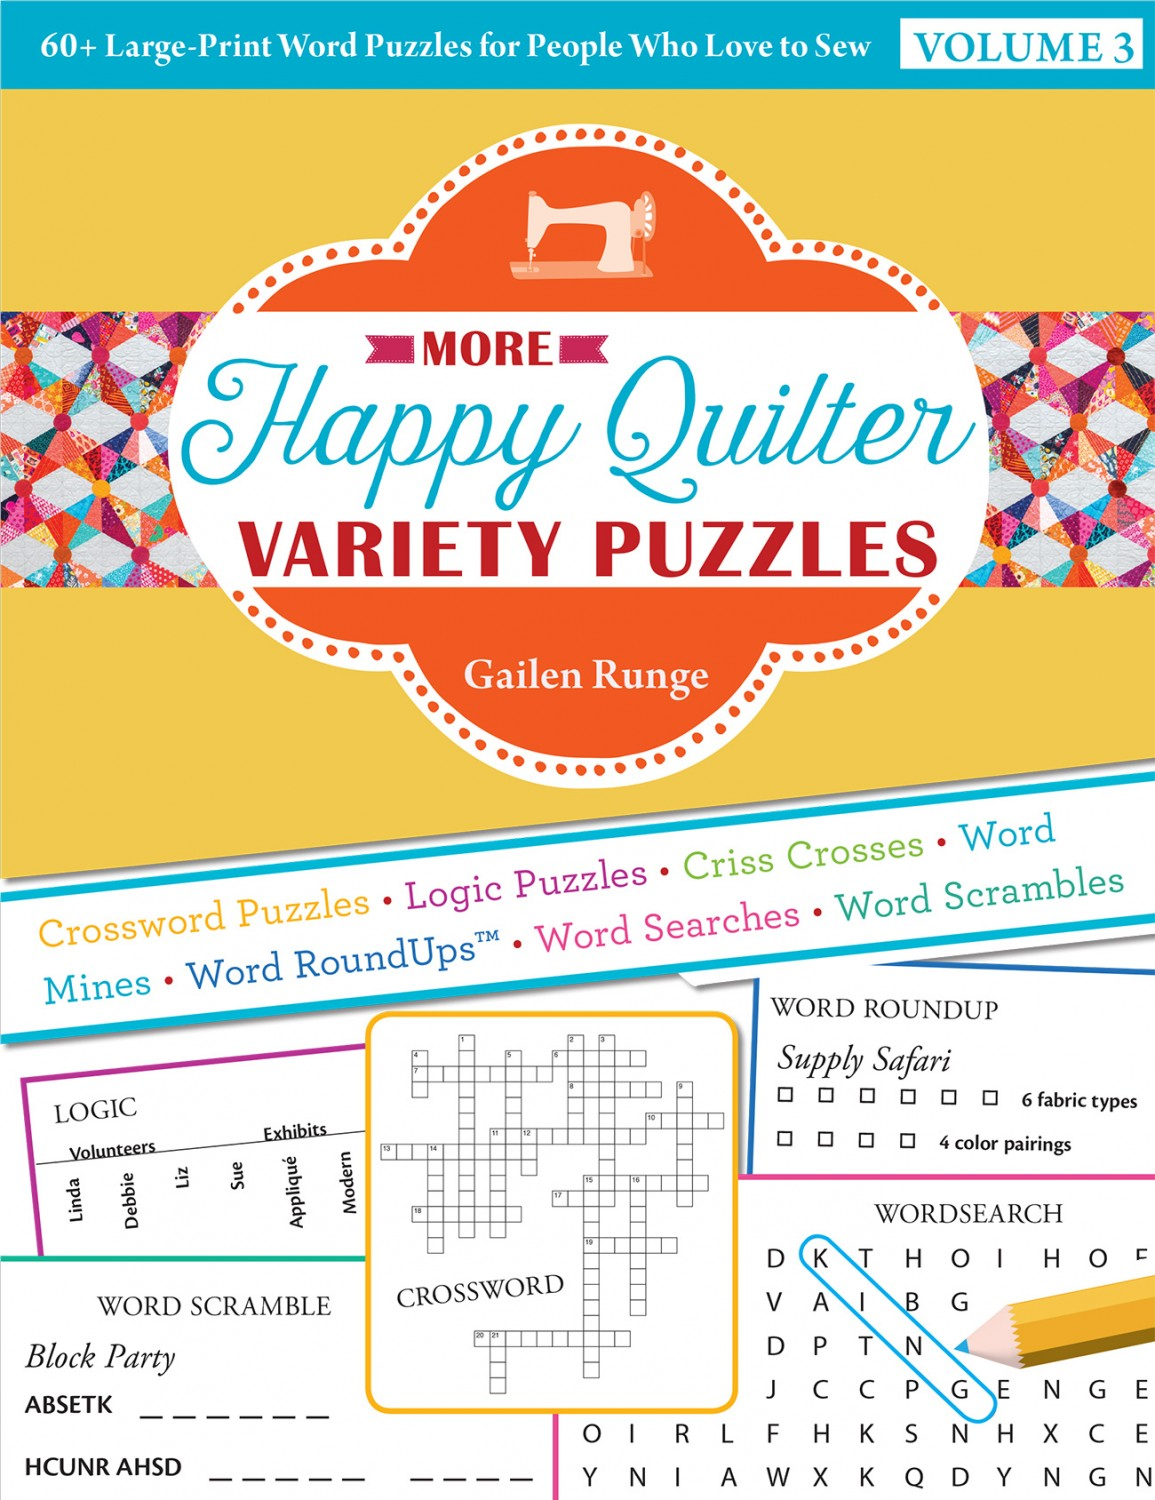 More Happy Quilter Variety Puzzles, Volume 3